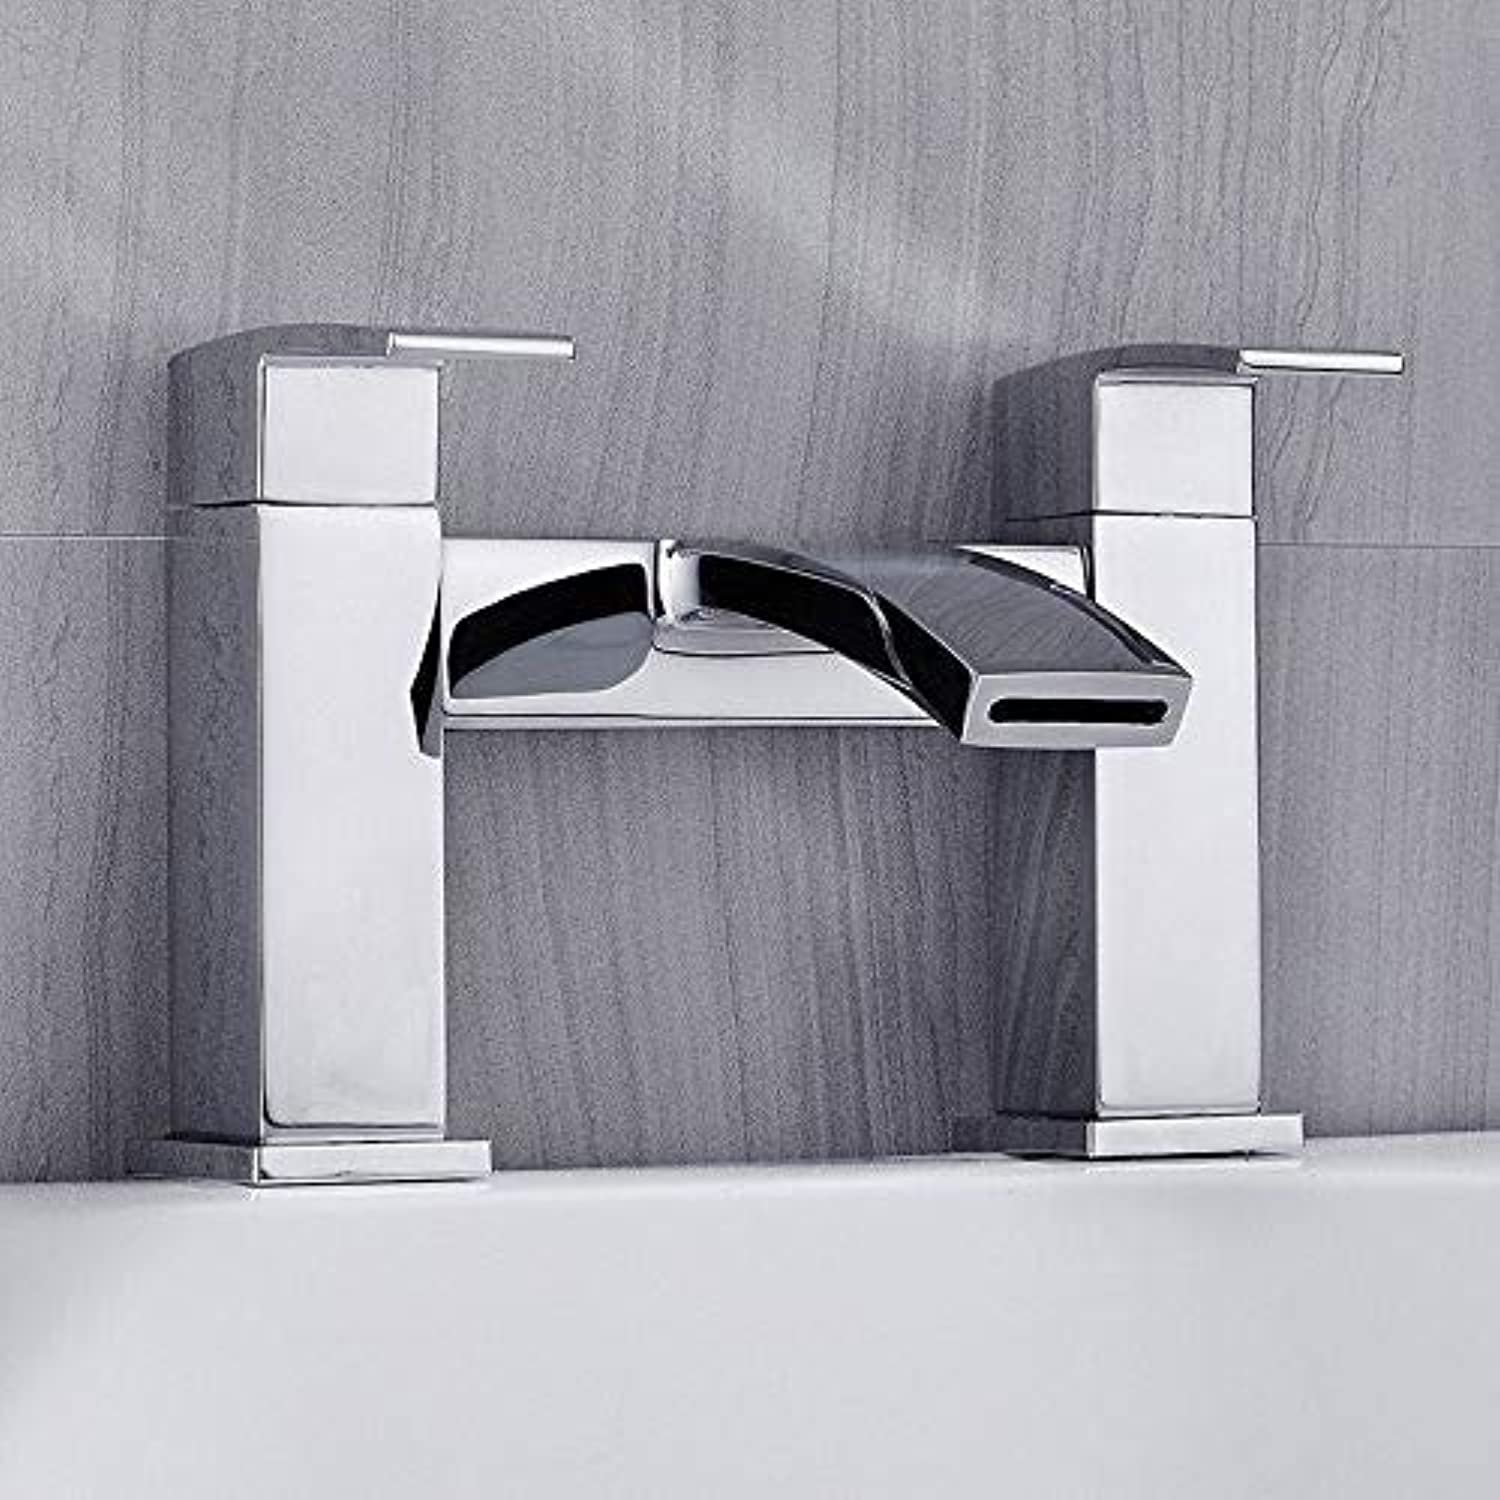 redOOY Faucet Taps Luxury Bath Bathroom Square Shower Faucet Mixer Tap With Shower Waterproof Shower Faucets Tub Chrome